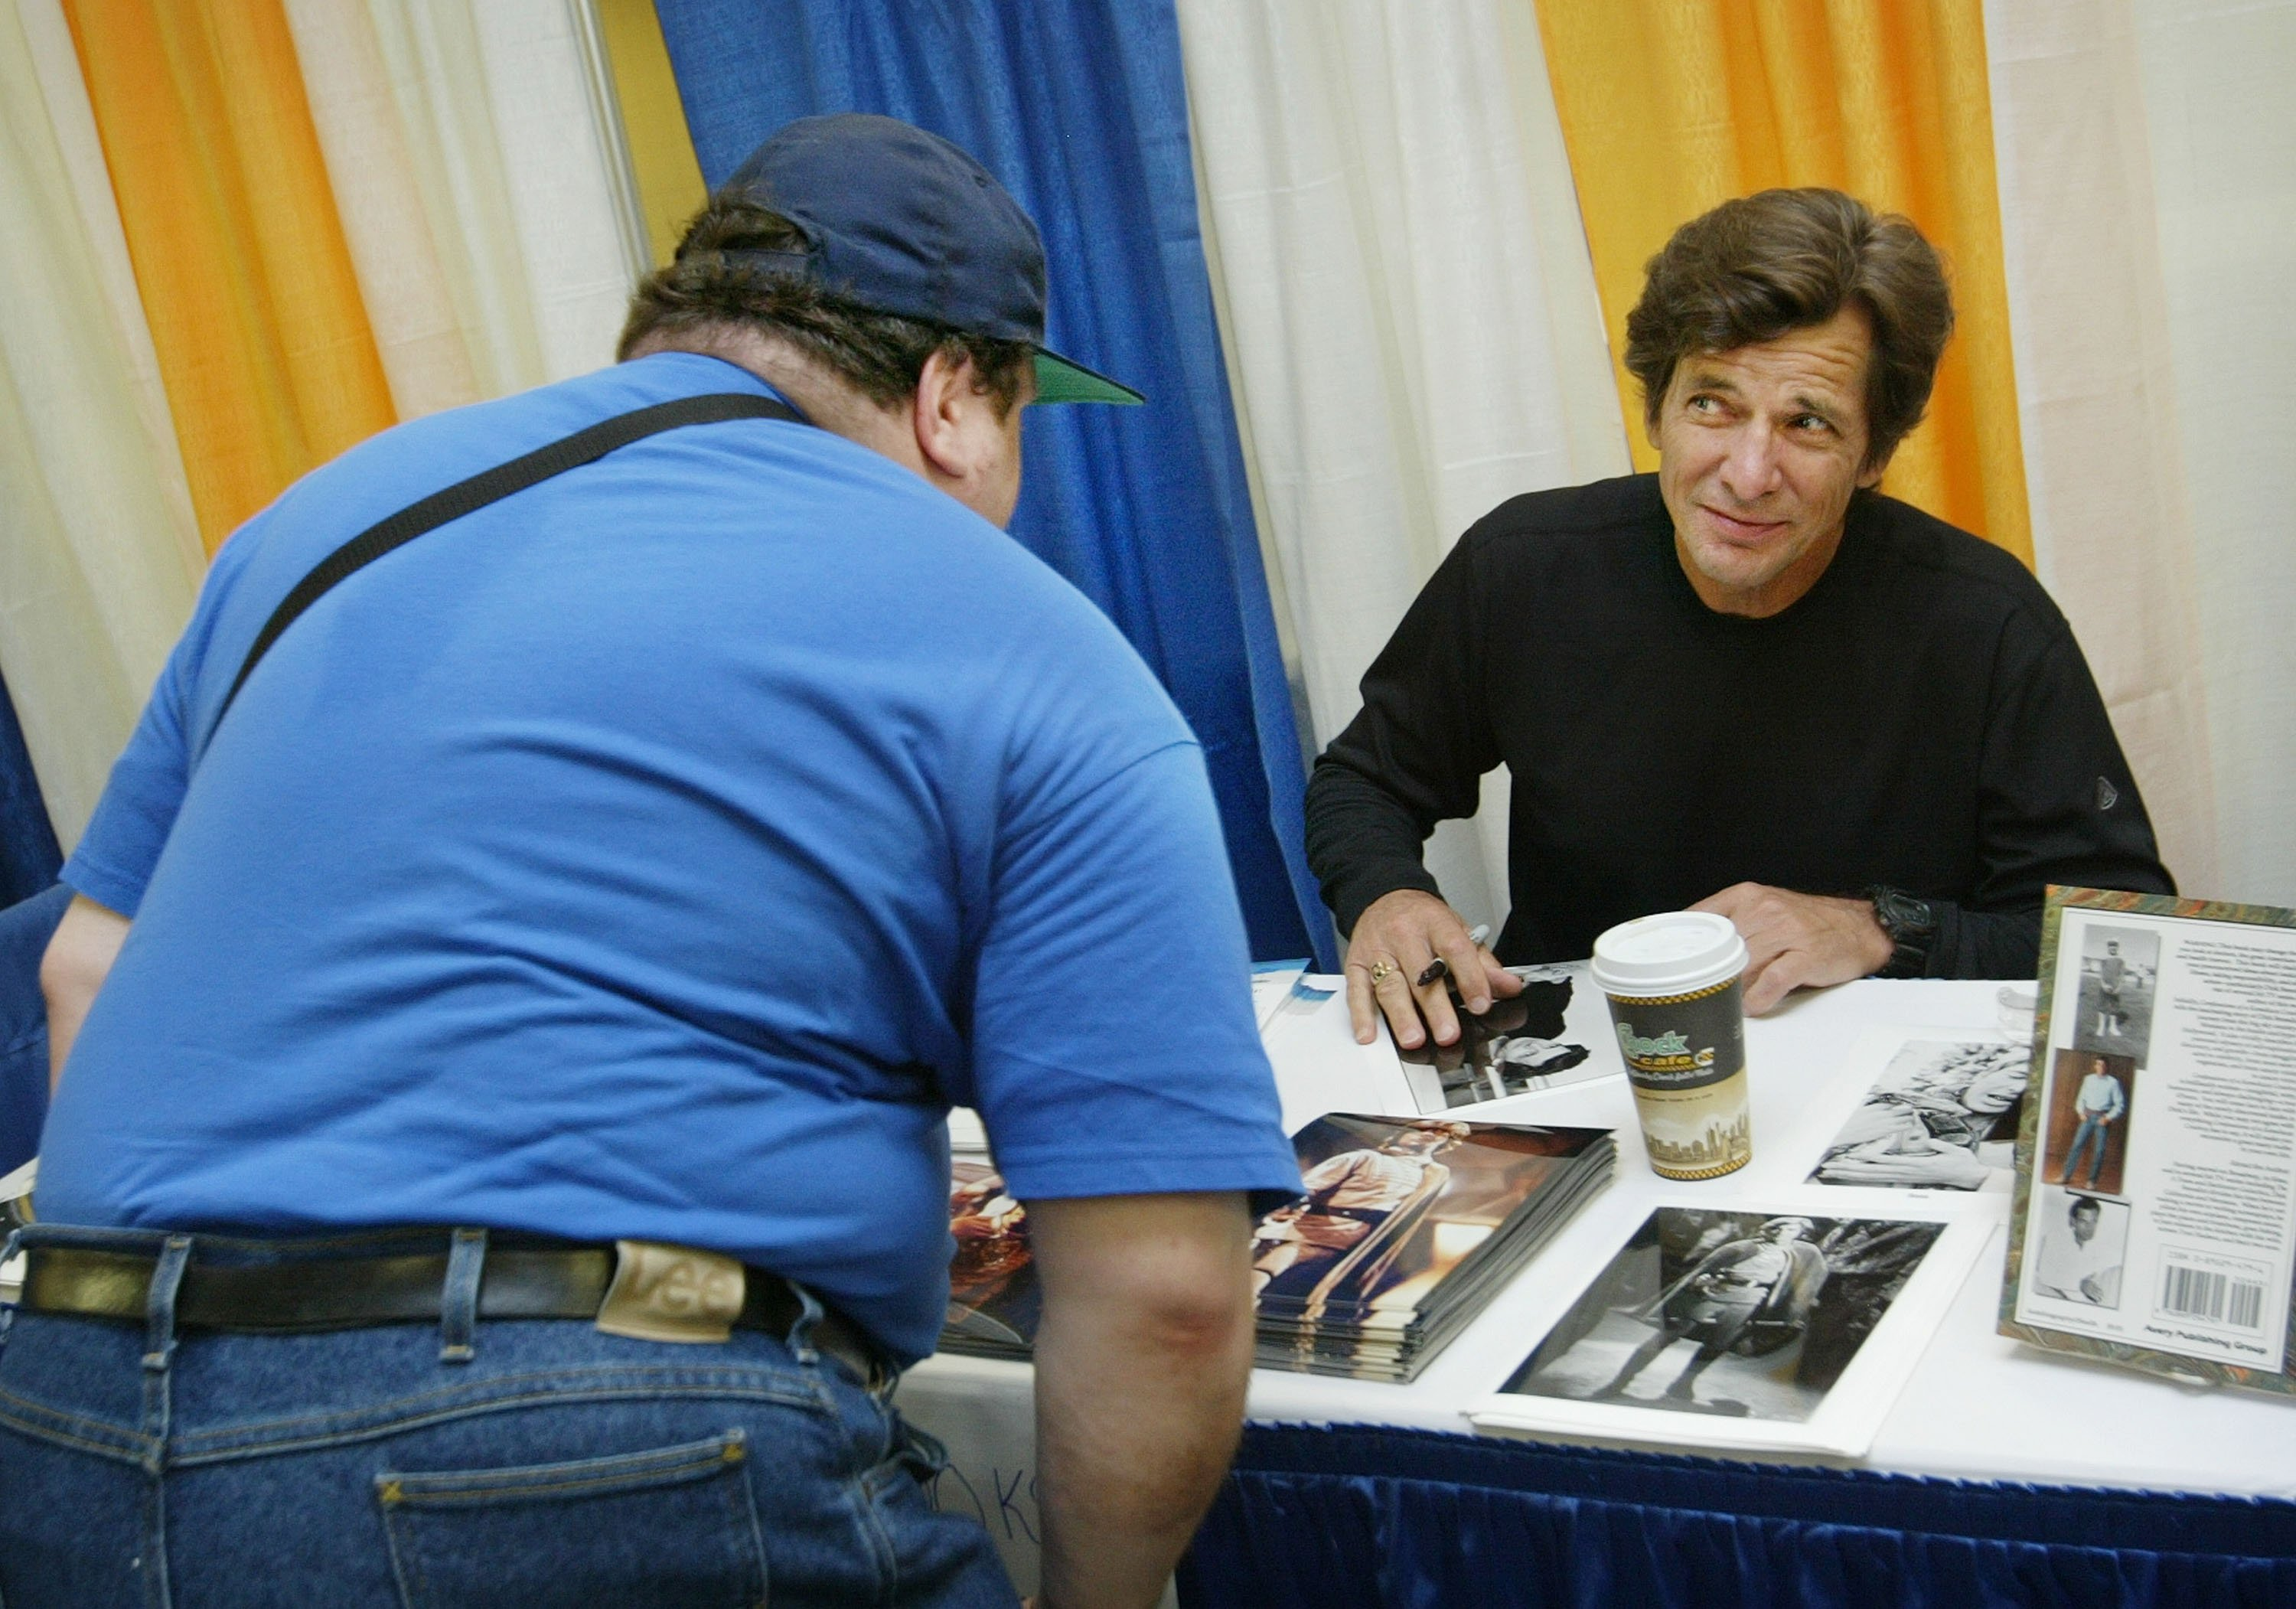 Actor Dirk Benedict, talks to a fan at the Sci-Fi and Fantasy Creators Convention June 27, 2003 | Source: Getty Images